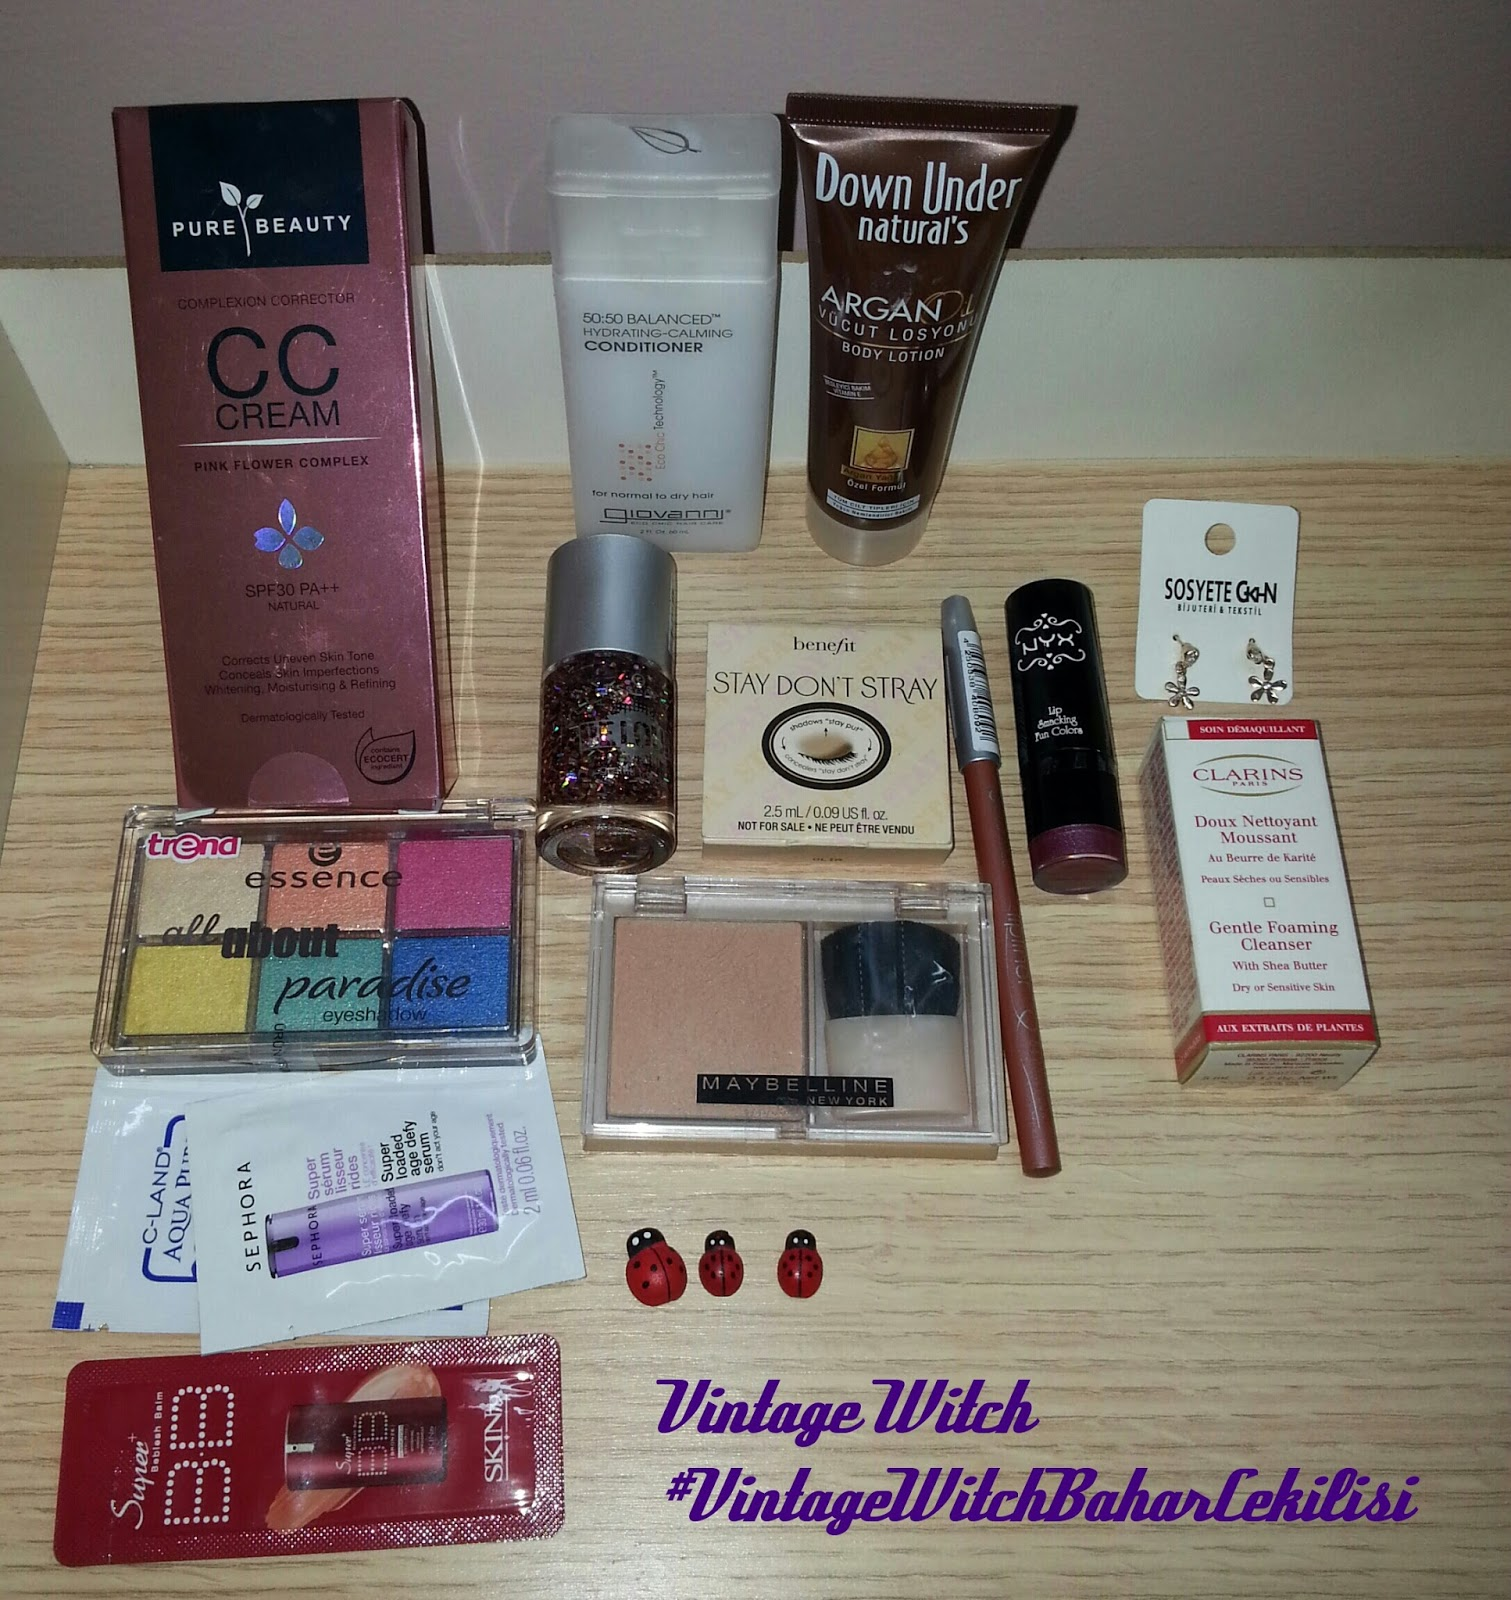 pure beauty cc krem, benefit, clarins, essence, skin79